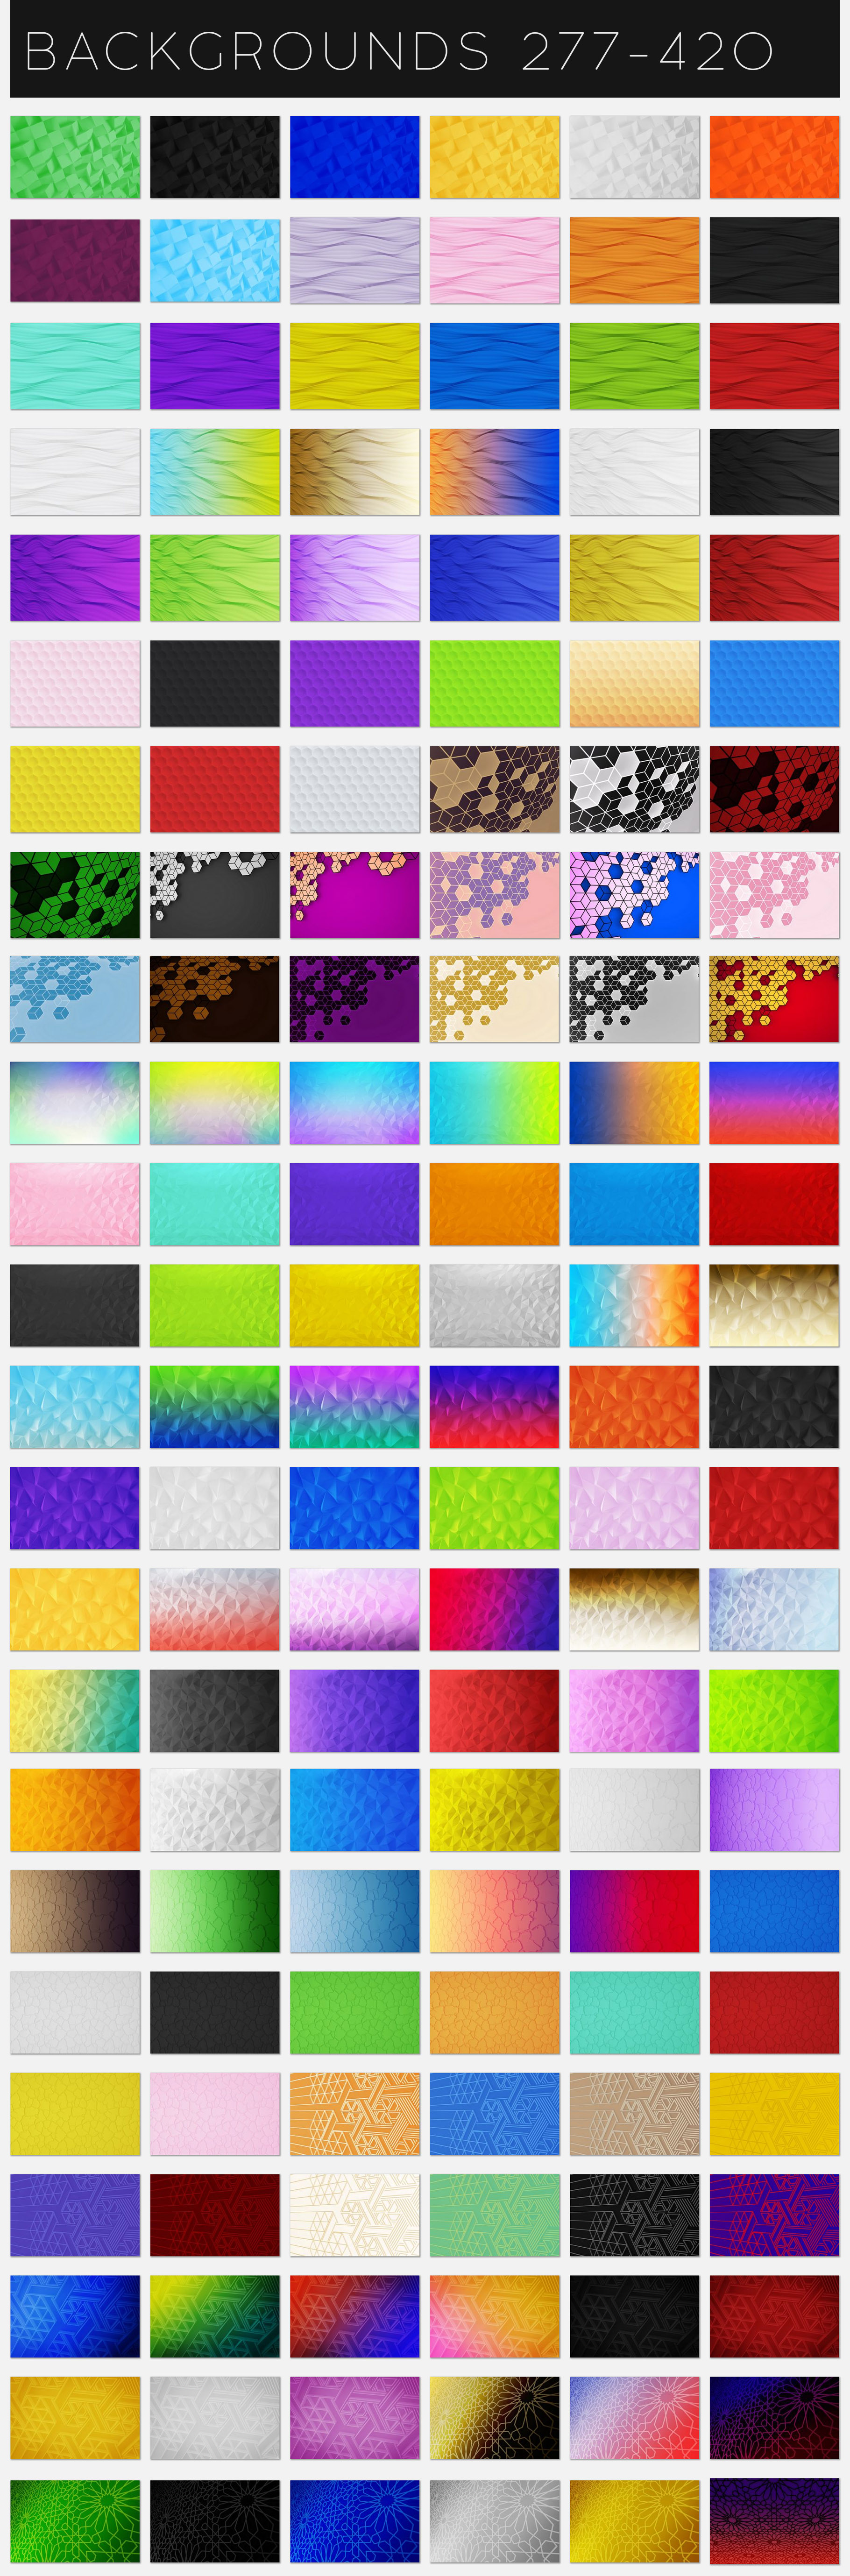 Abstract Backgrounds Volume 1 example image 14